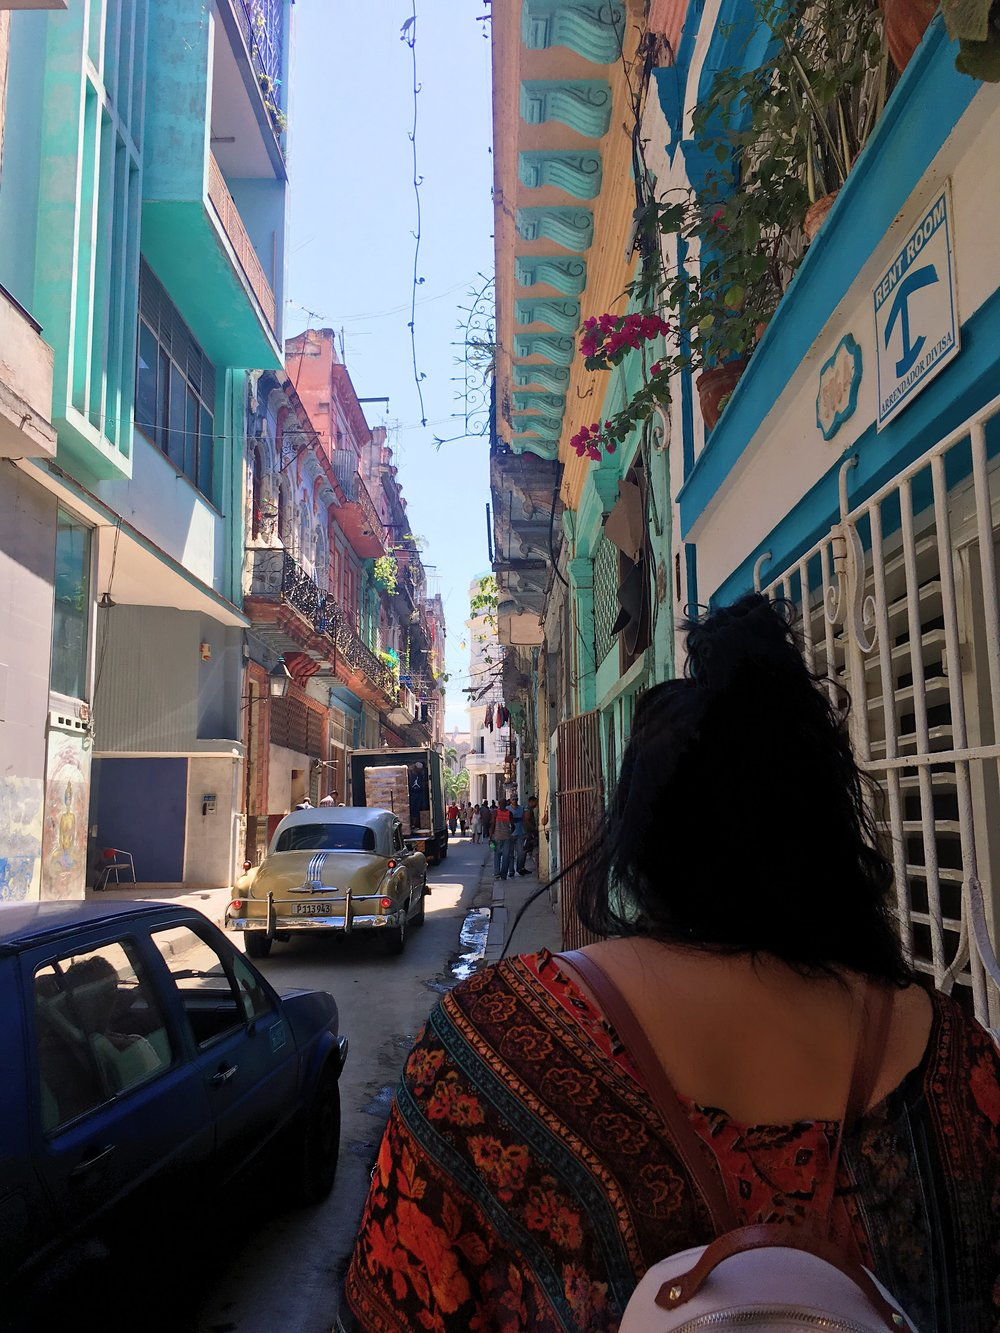 Wandering the streets of Old Havana